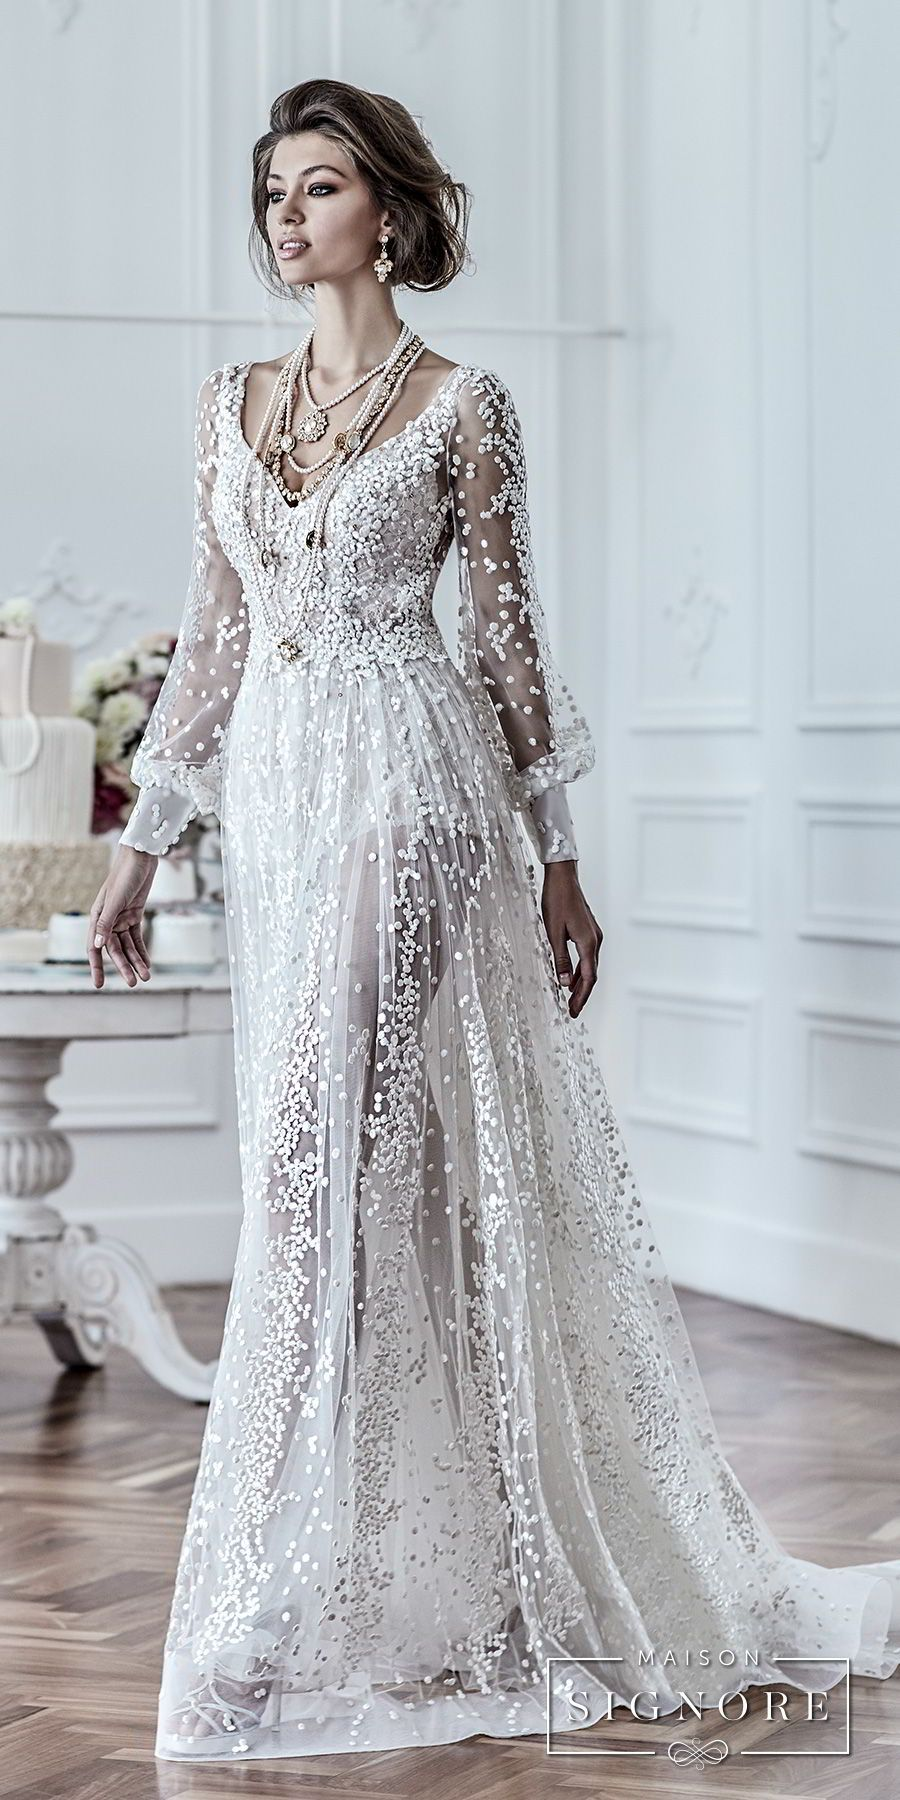 Wedding dress with long sleeves  maison signore  bridal long sleeves v neck full embellishment